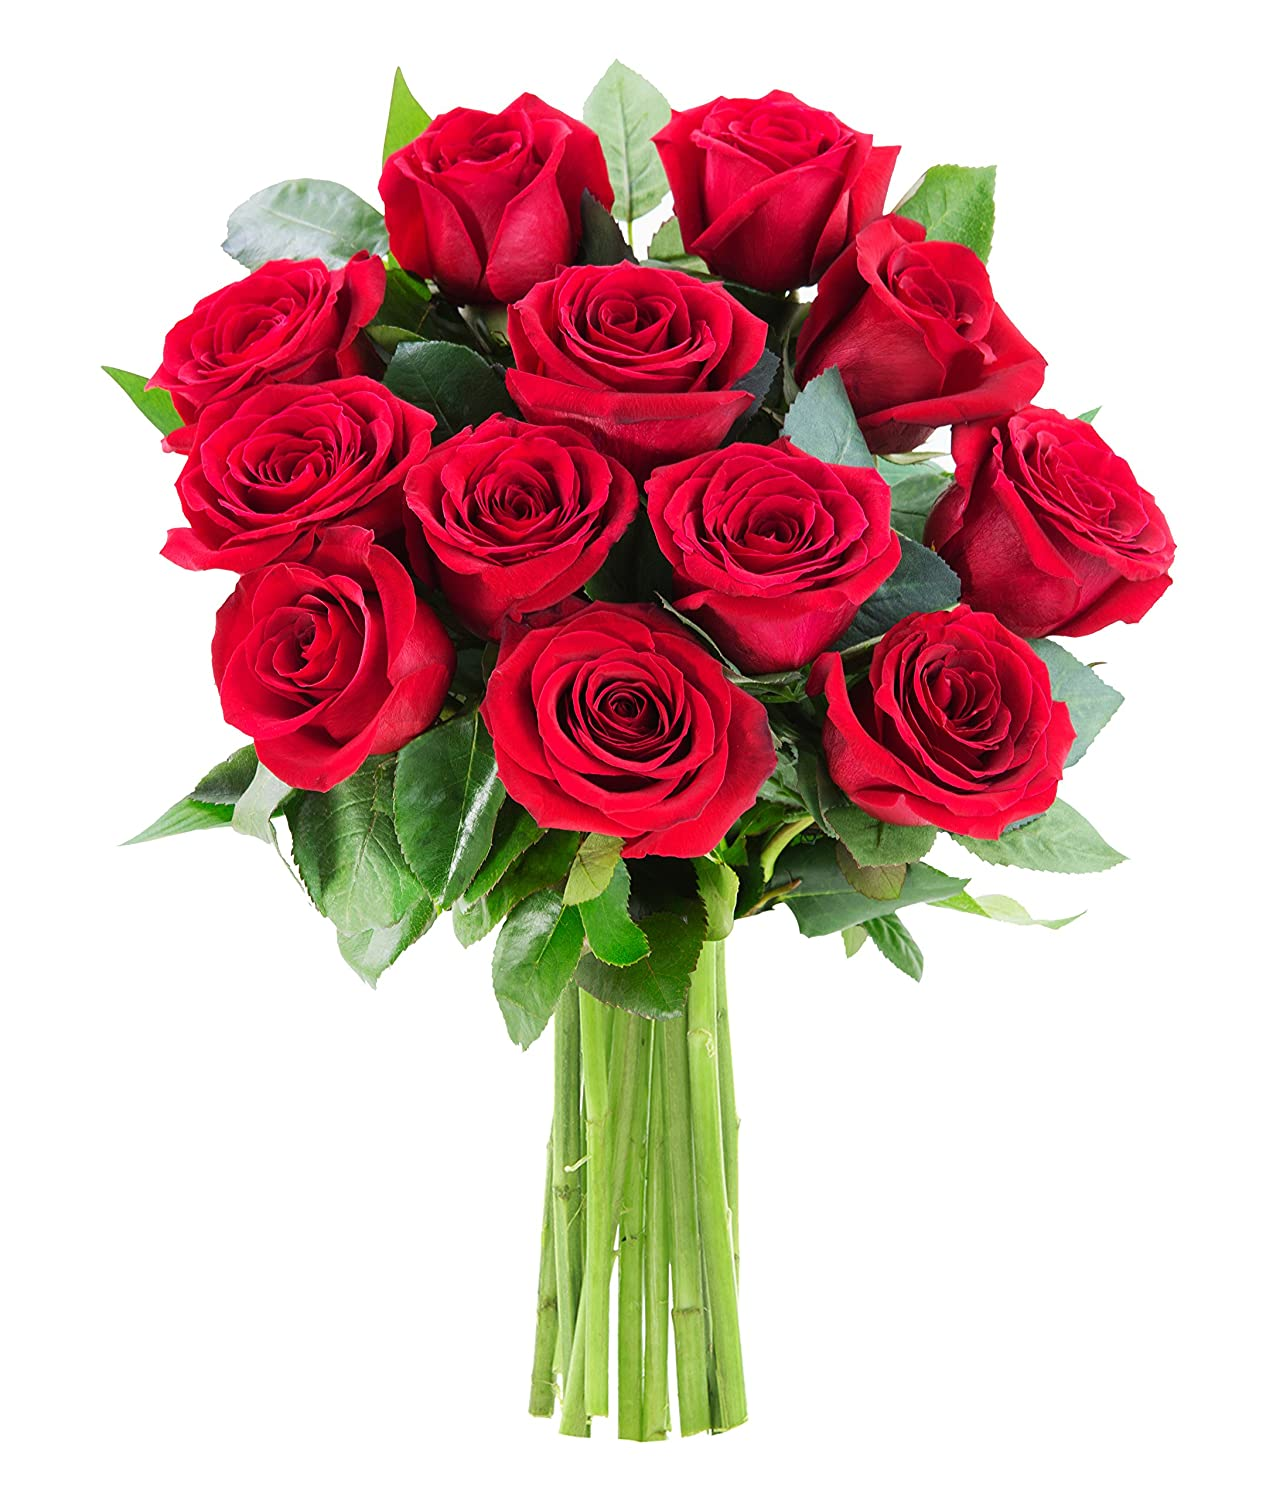 Amazon kabloom the romantic classic red rose bouquet of 12 amazon kabloom the romantic classic red rose bouquet of 12 fresh cut red roses long stemmed with vase grocery gourmet food izmirmasajfo